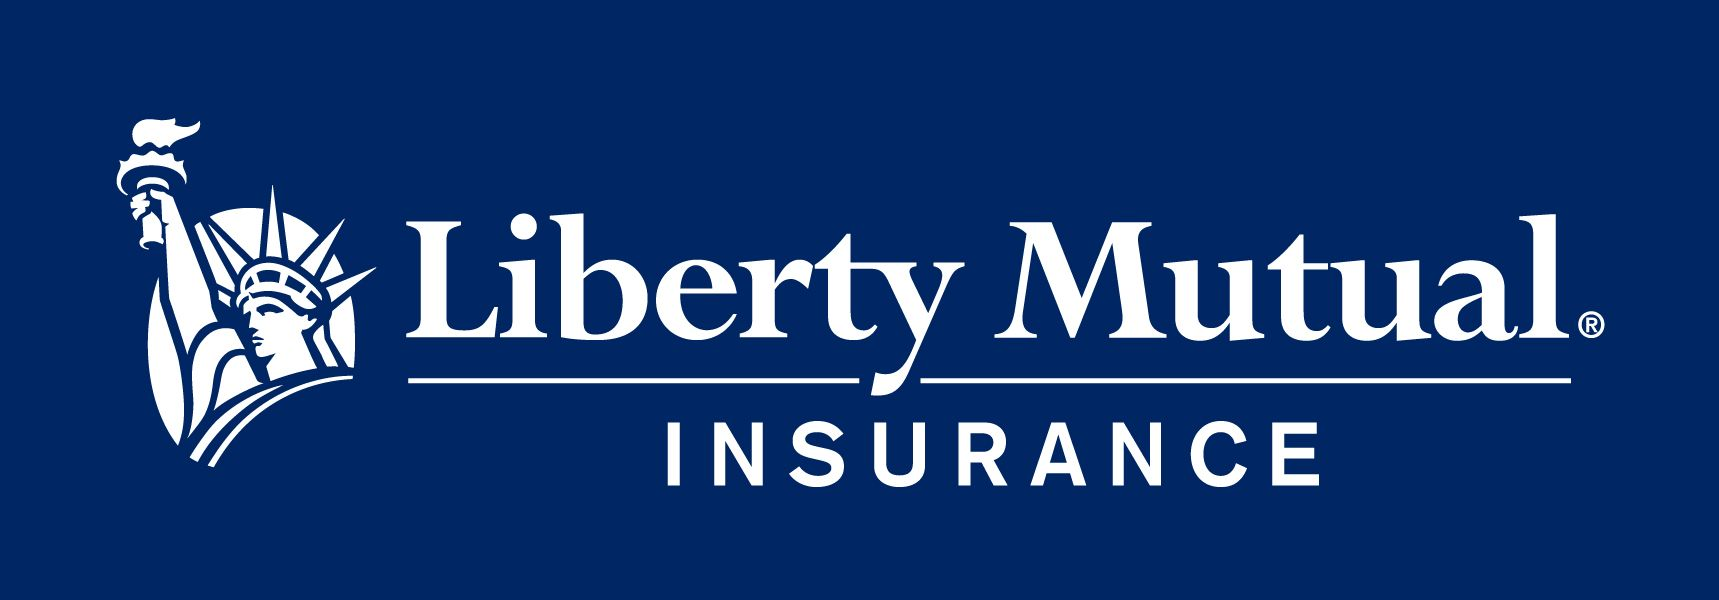 Liberty Mutual Car Insurance Quote Inspiration Image Result For Liberty Mutual Insurance  Branding  Pinterest